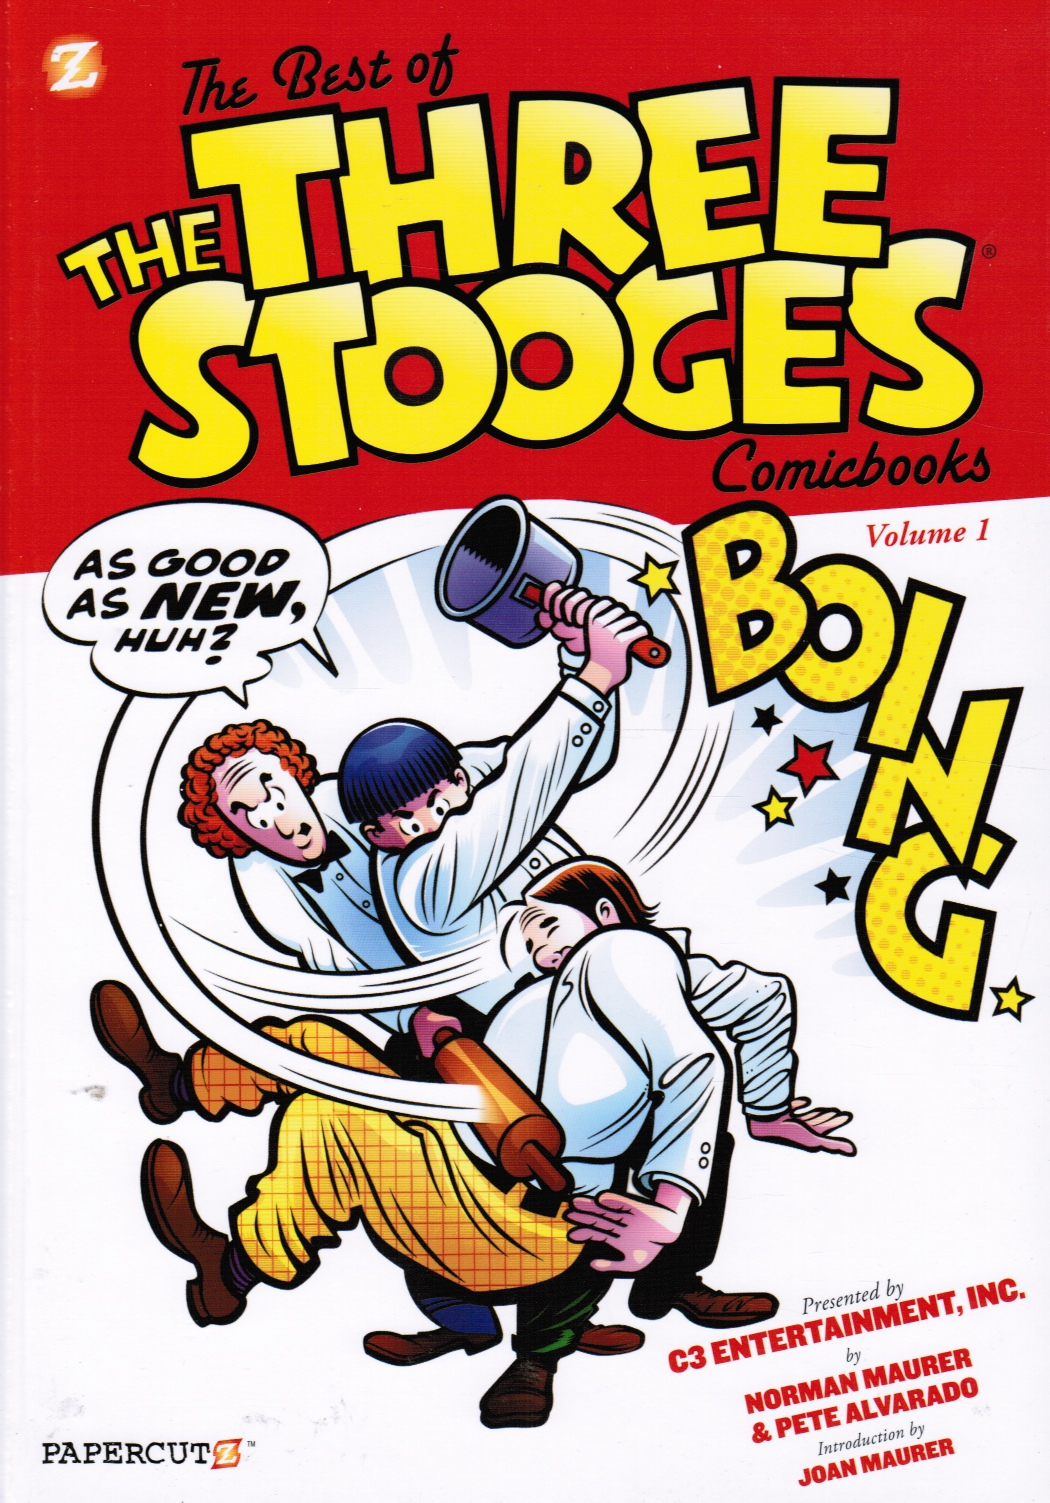 Image for The Best of the Three Stooges Comicbooks #1